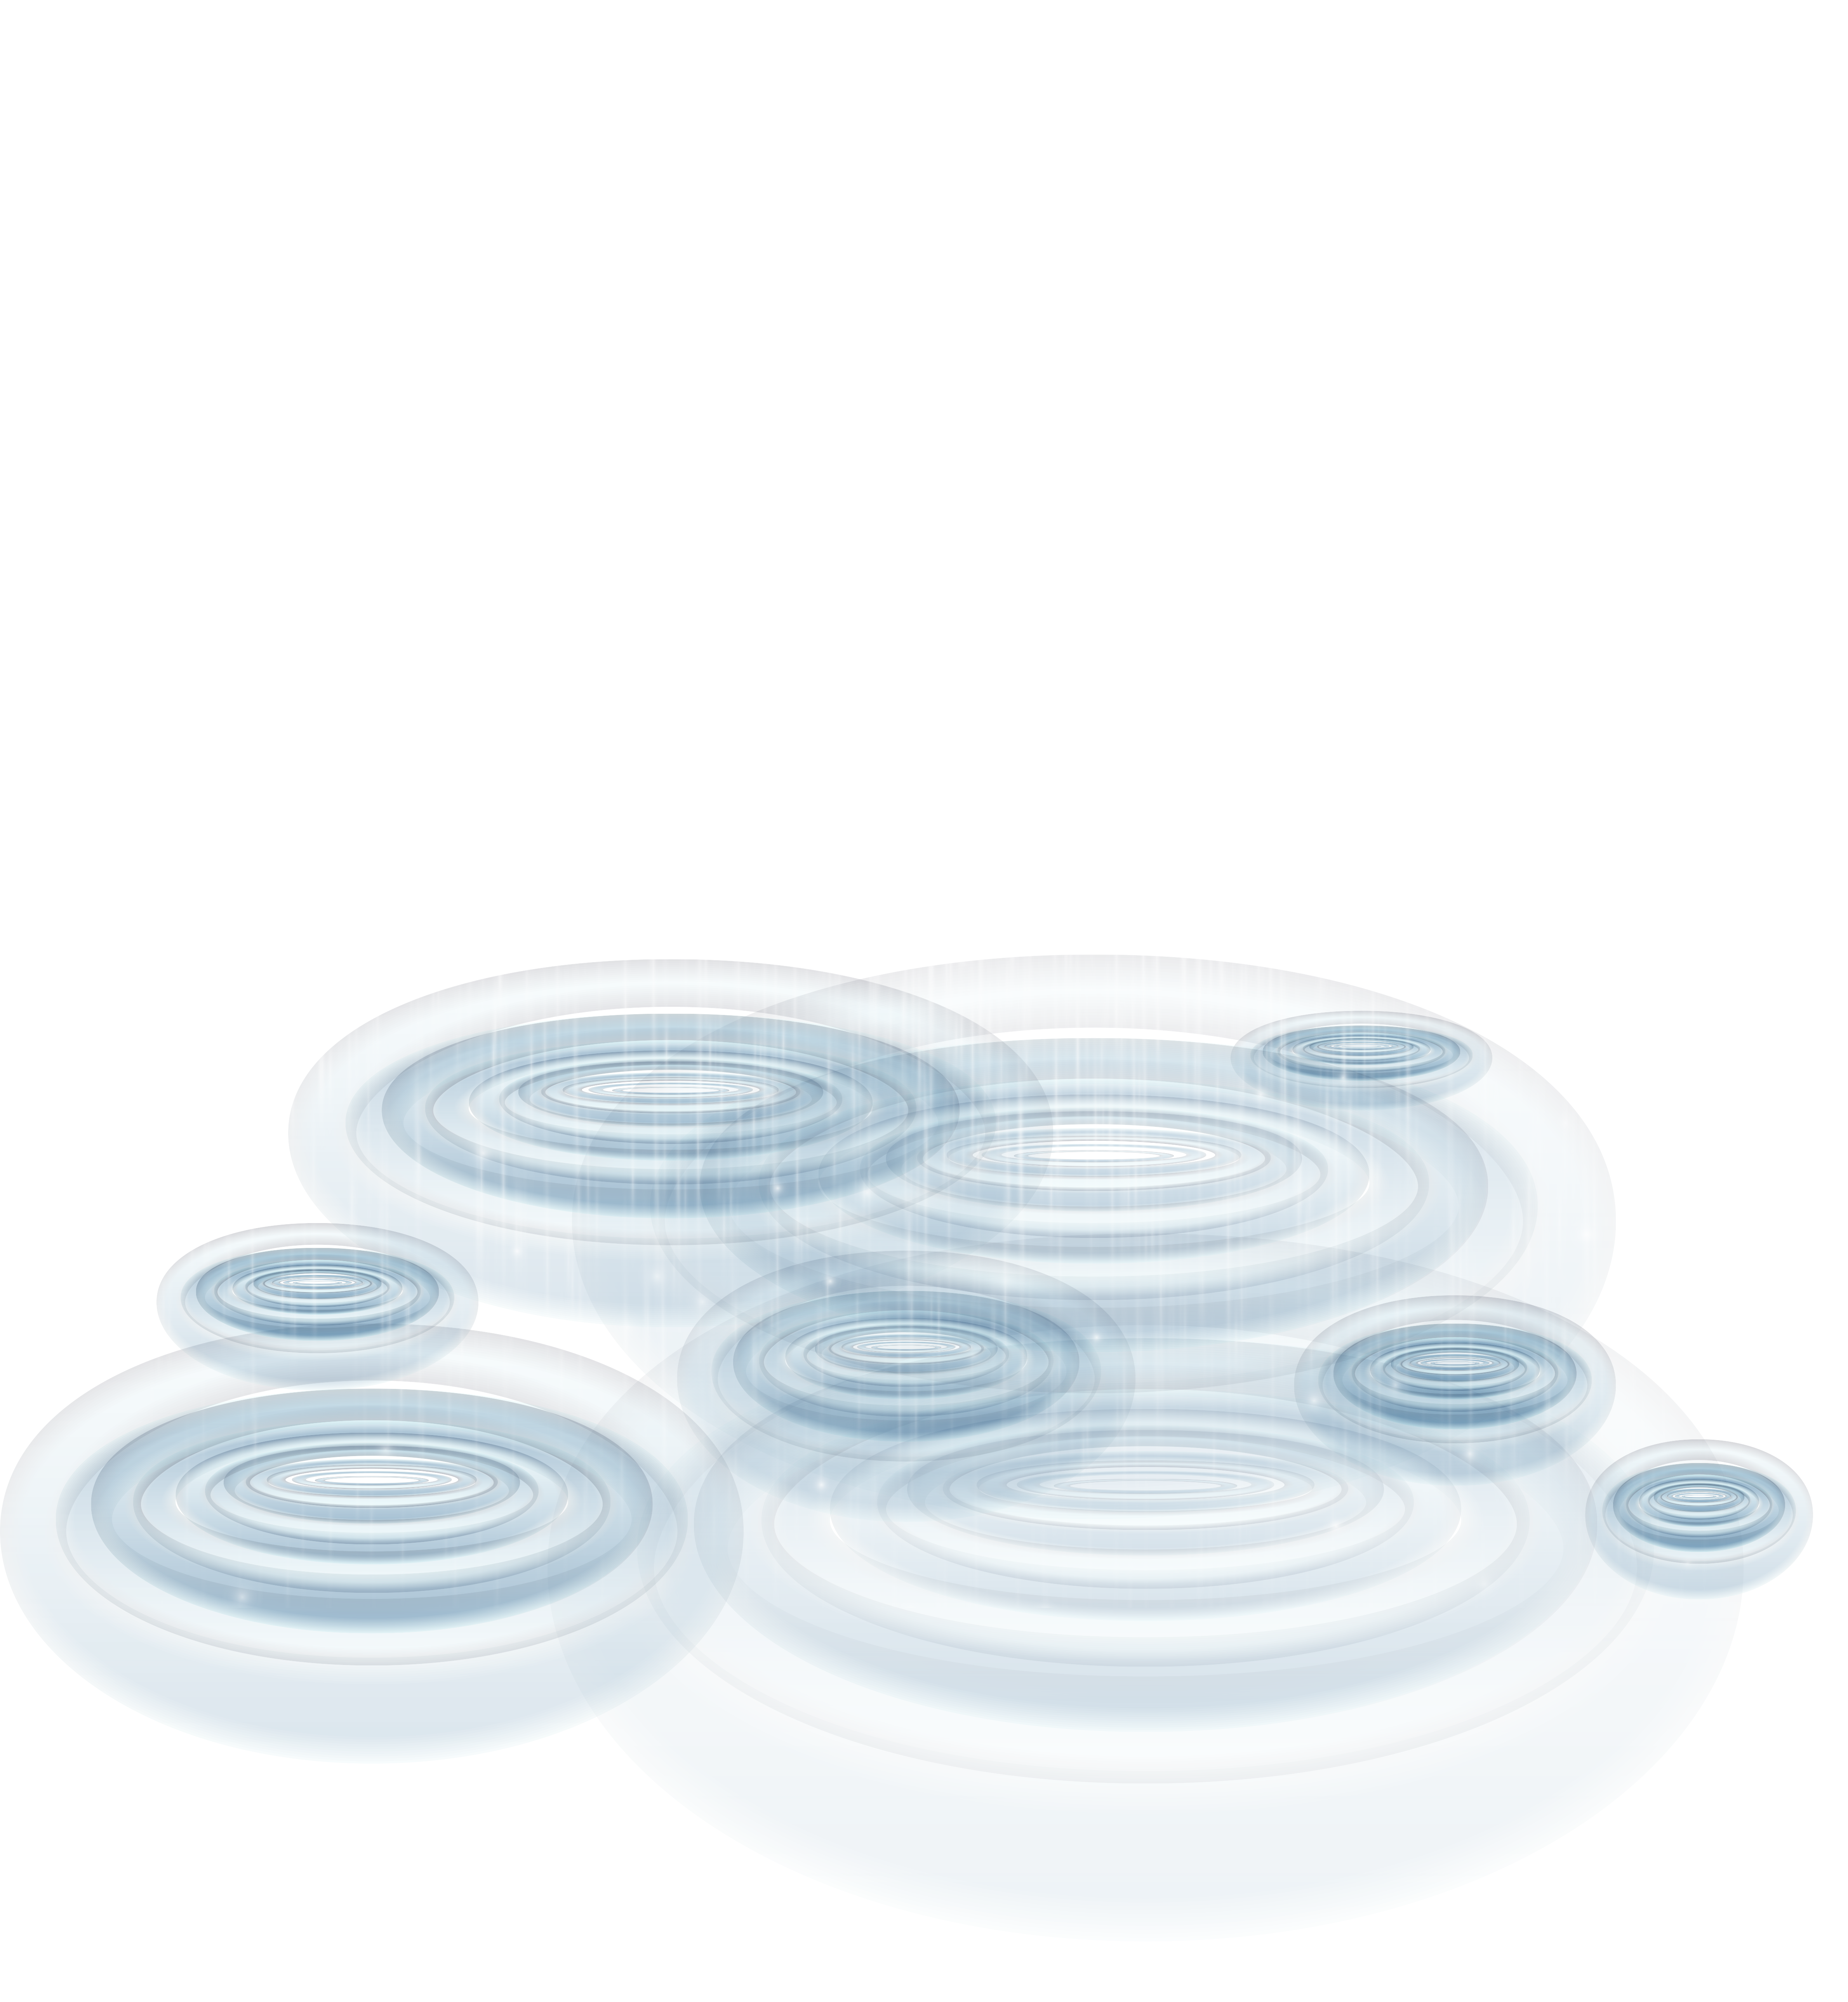 freeuse stock Puddle clipart. Rain with puddles transparent.